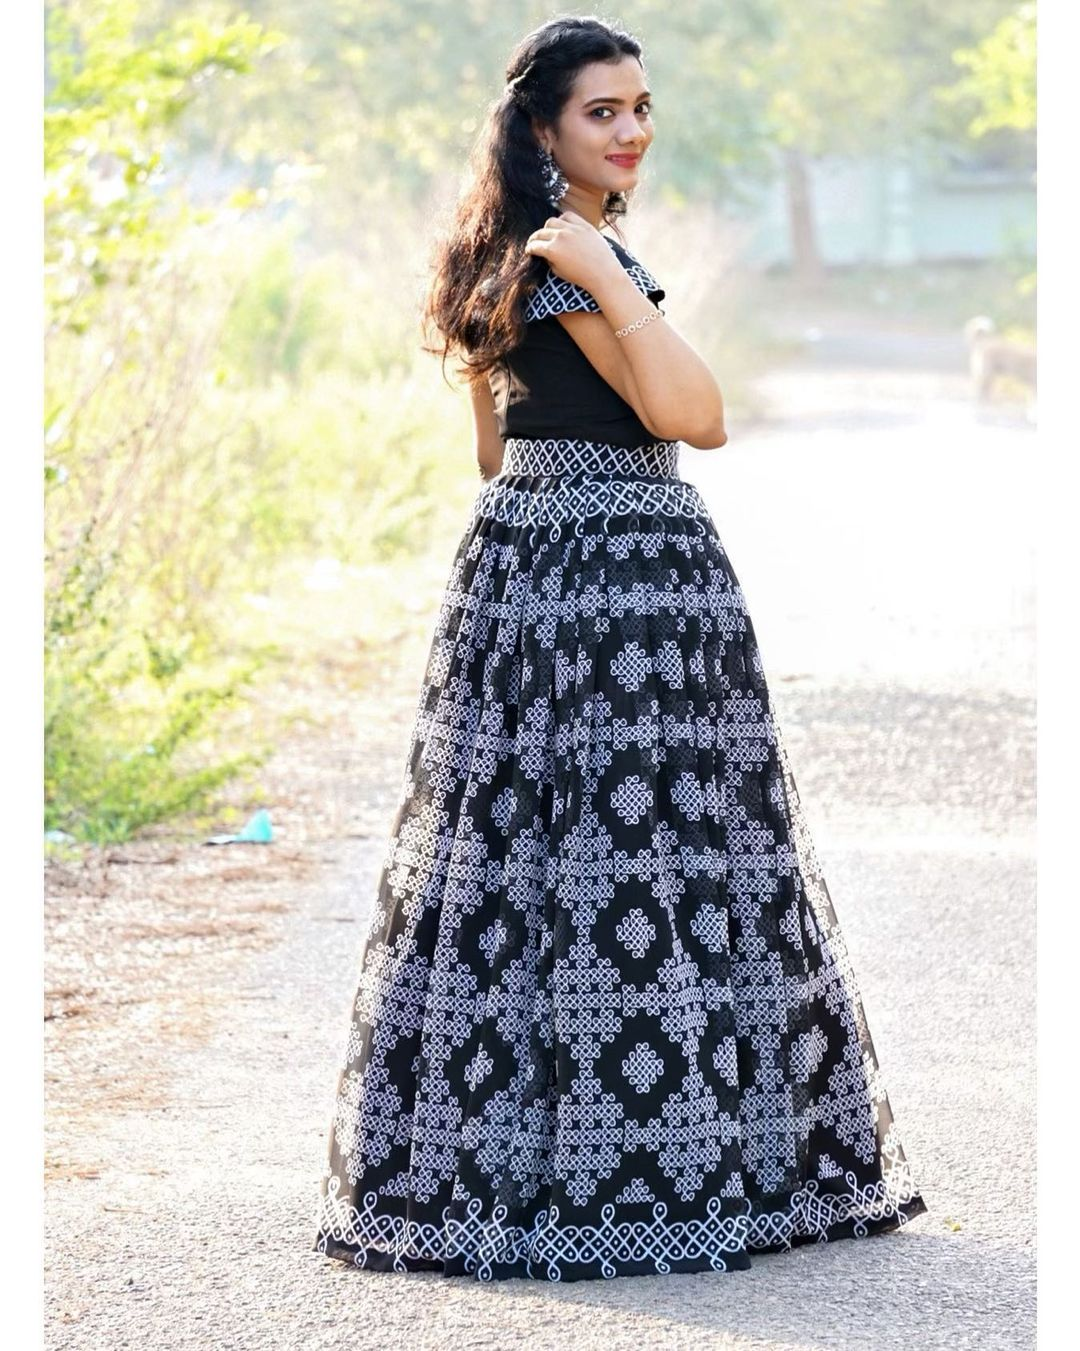 Stunning black color skirt and off shoulder crop top with muggu print. 2021-01-24